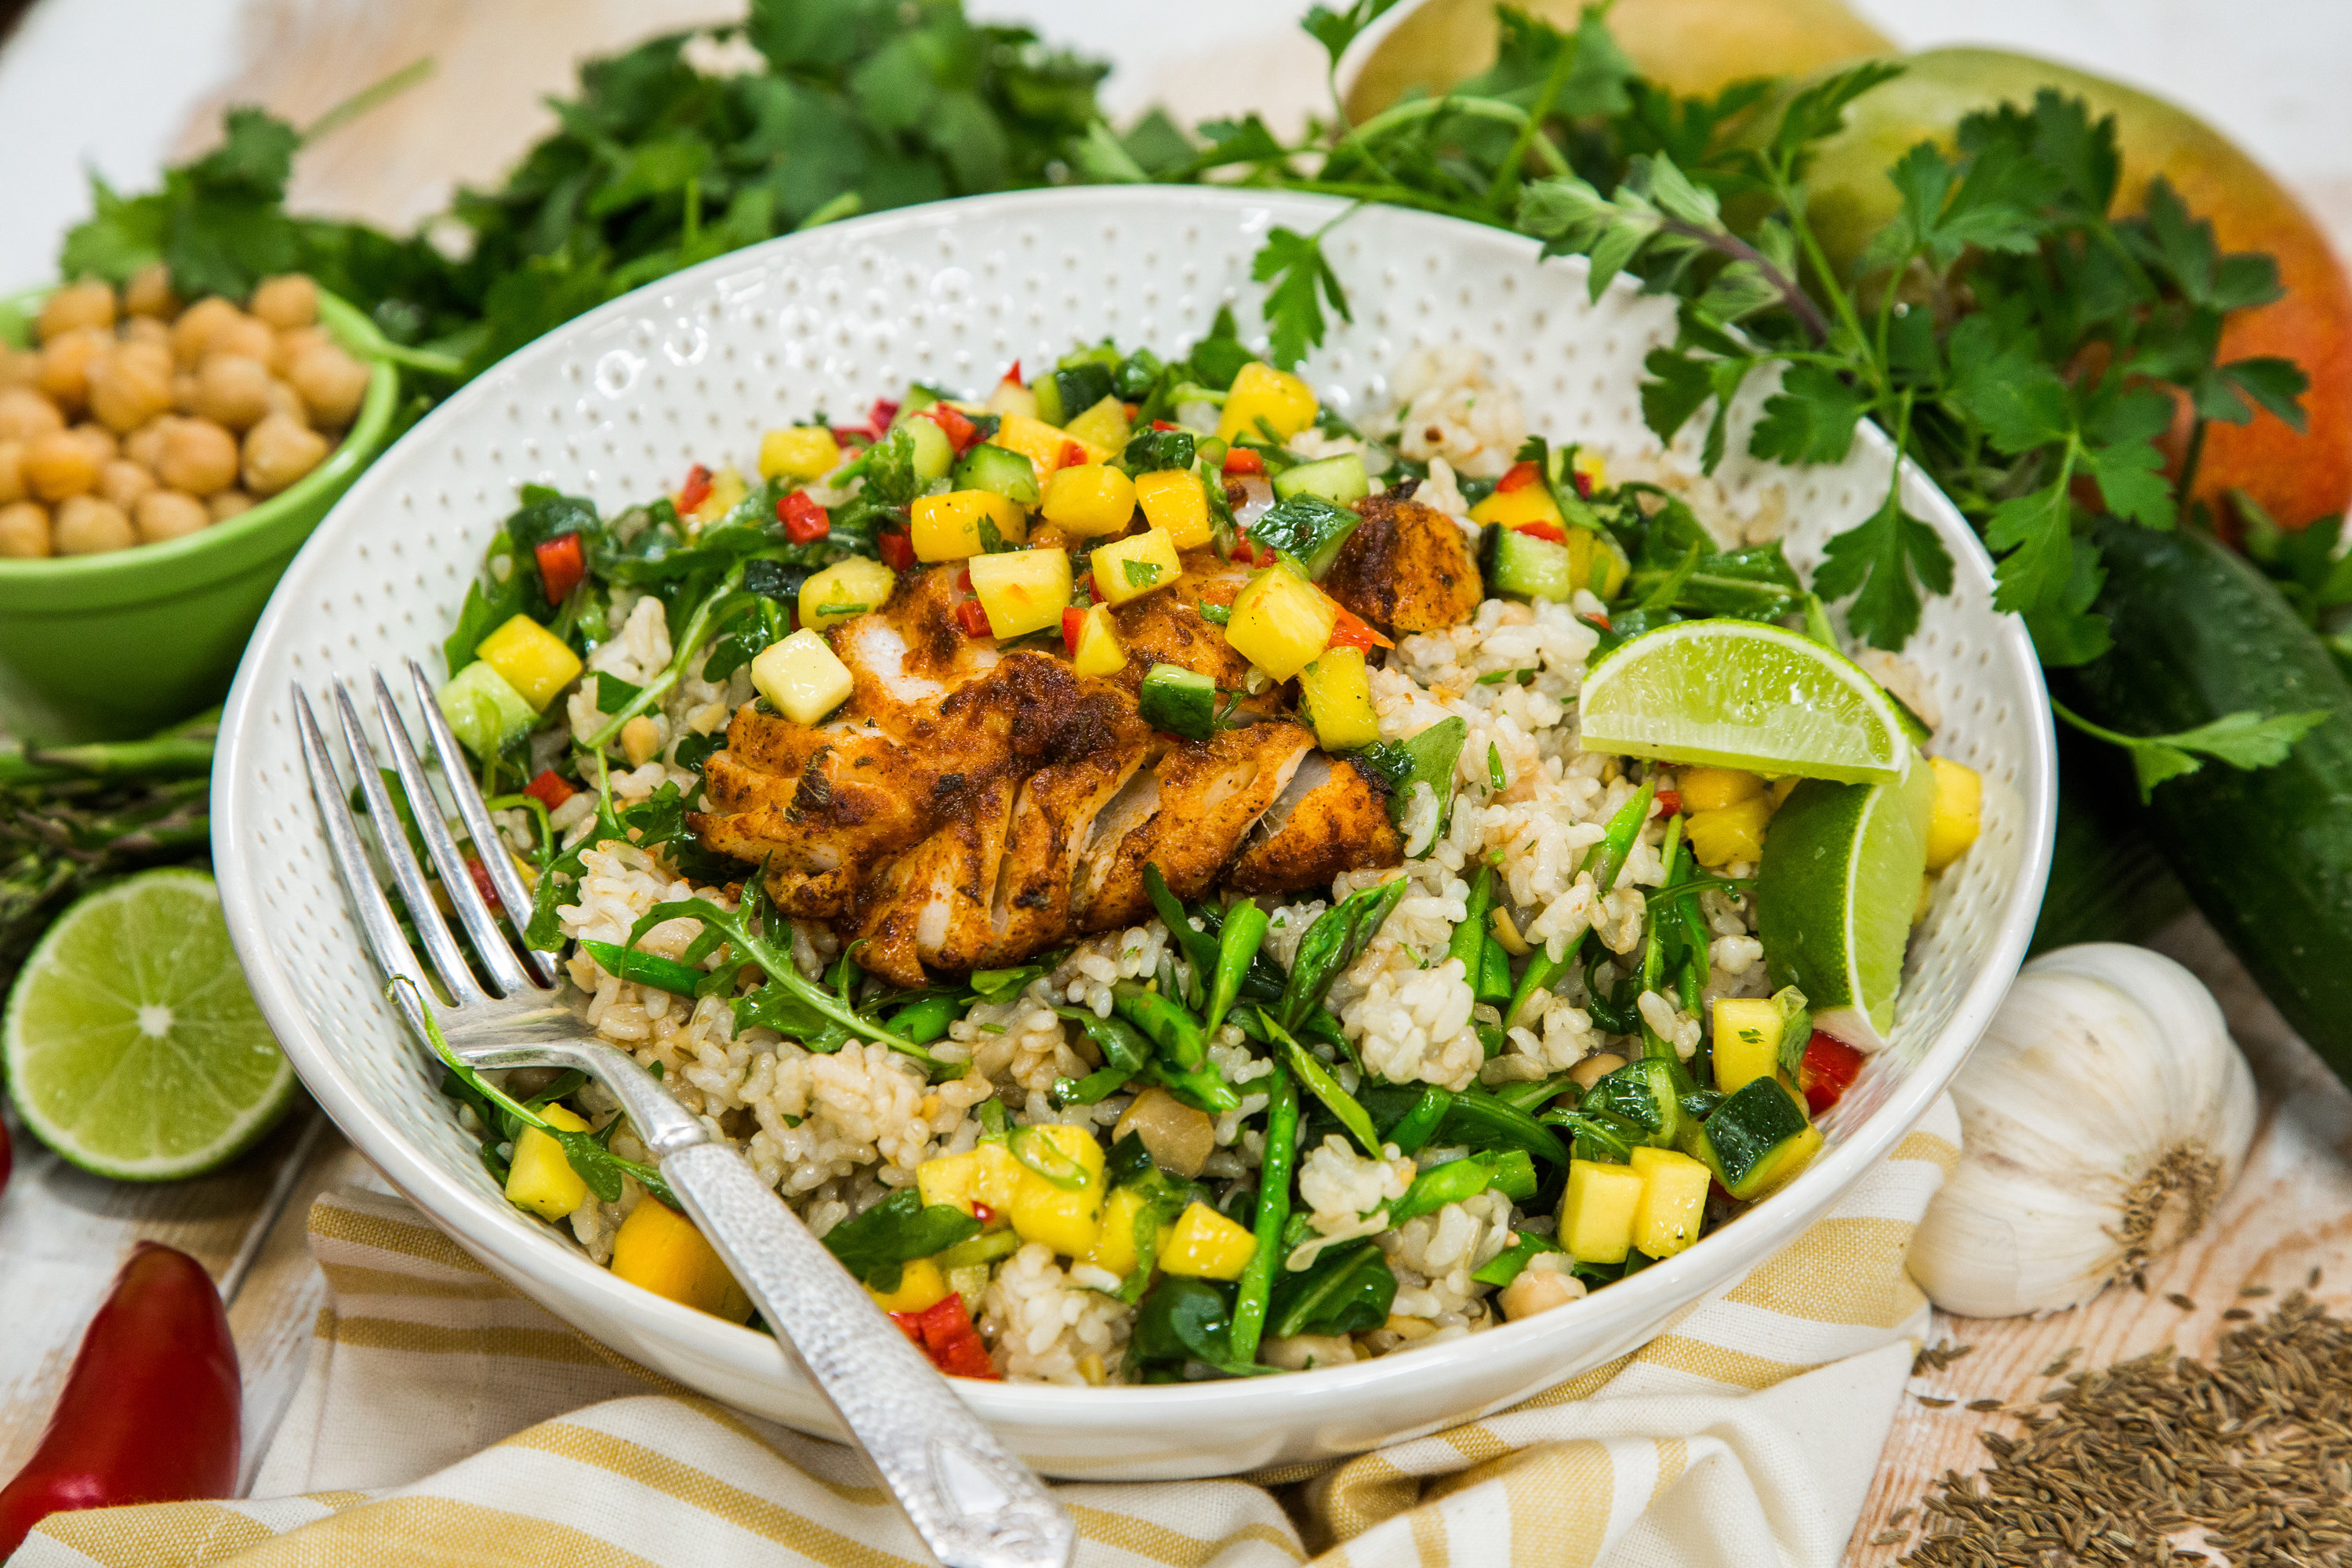 Spiced fish with mango salsa and brown rice salad for Mango salsa recipe for fish